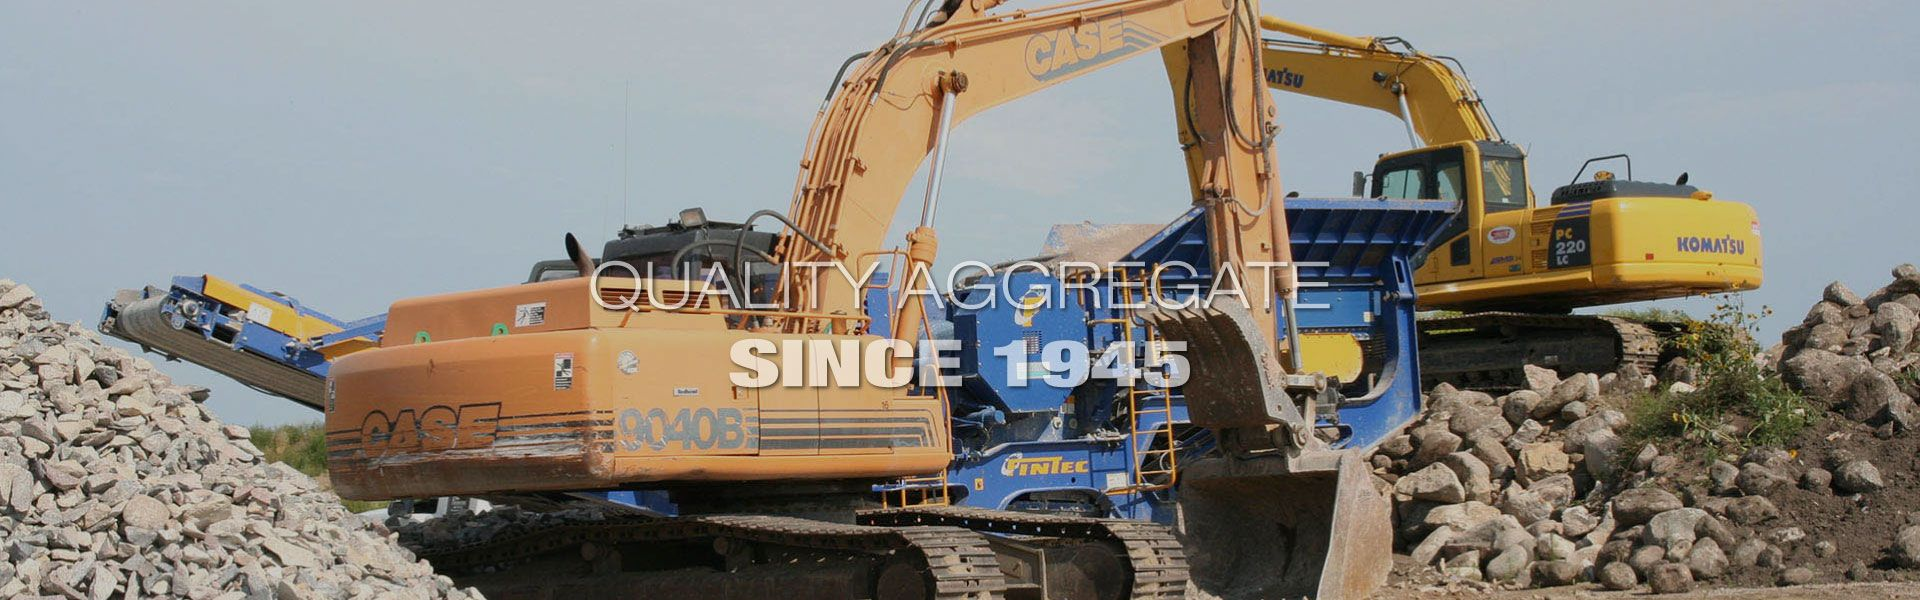 Quality Aggregate Since 1945 | excavators